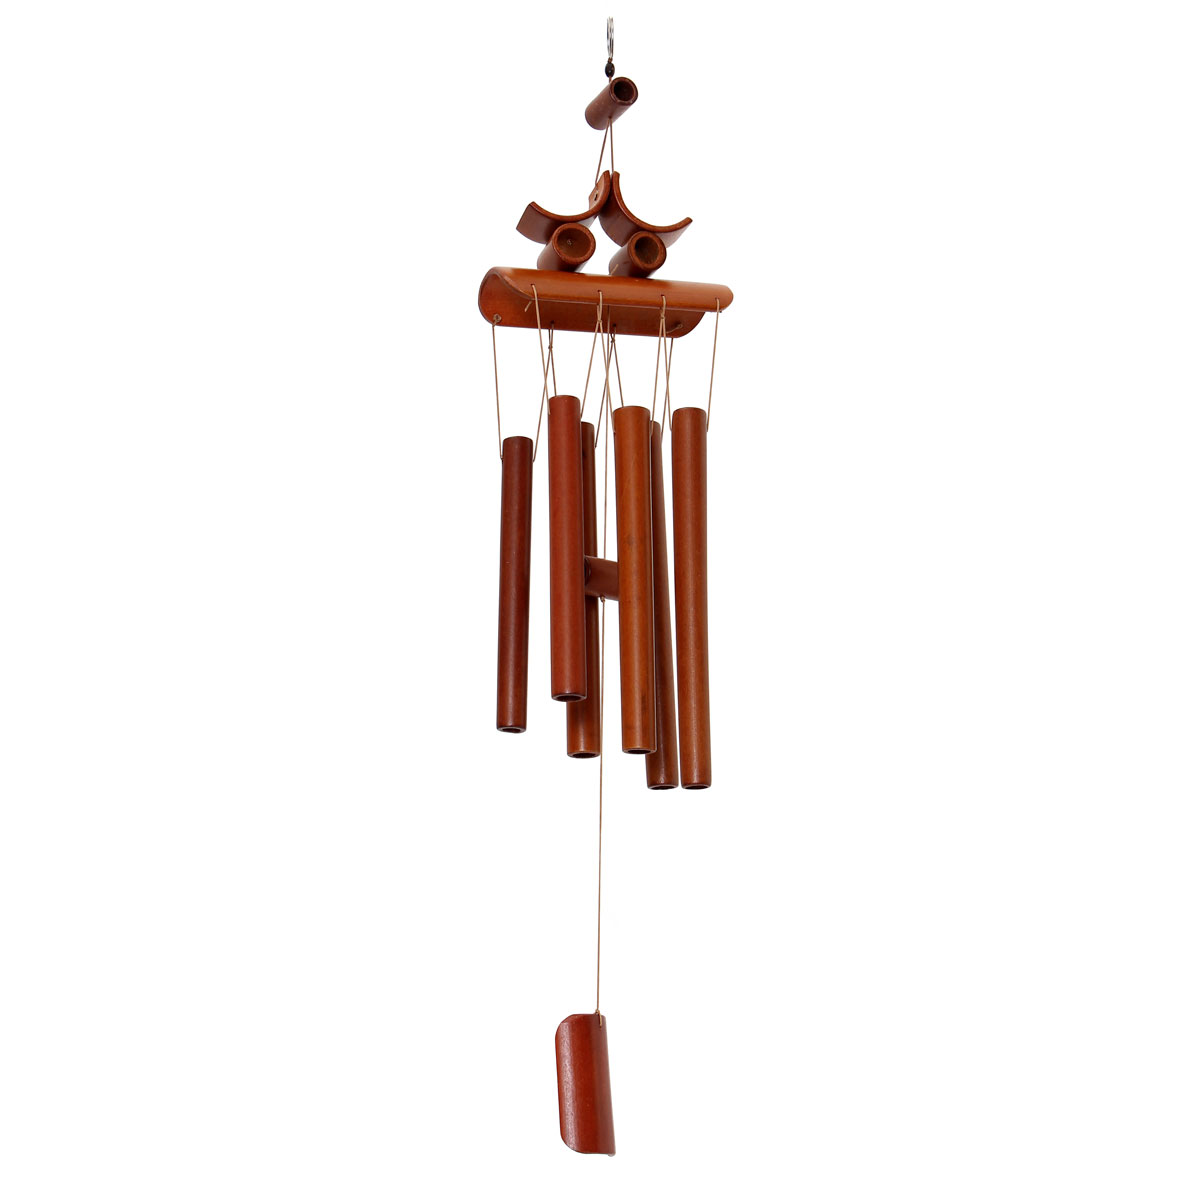 Bamboo wind chime windchime garden feng shui ornament for Home ornaments